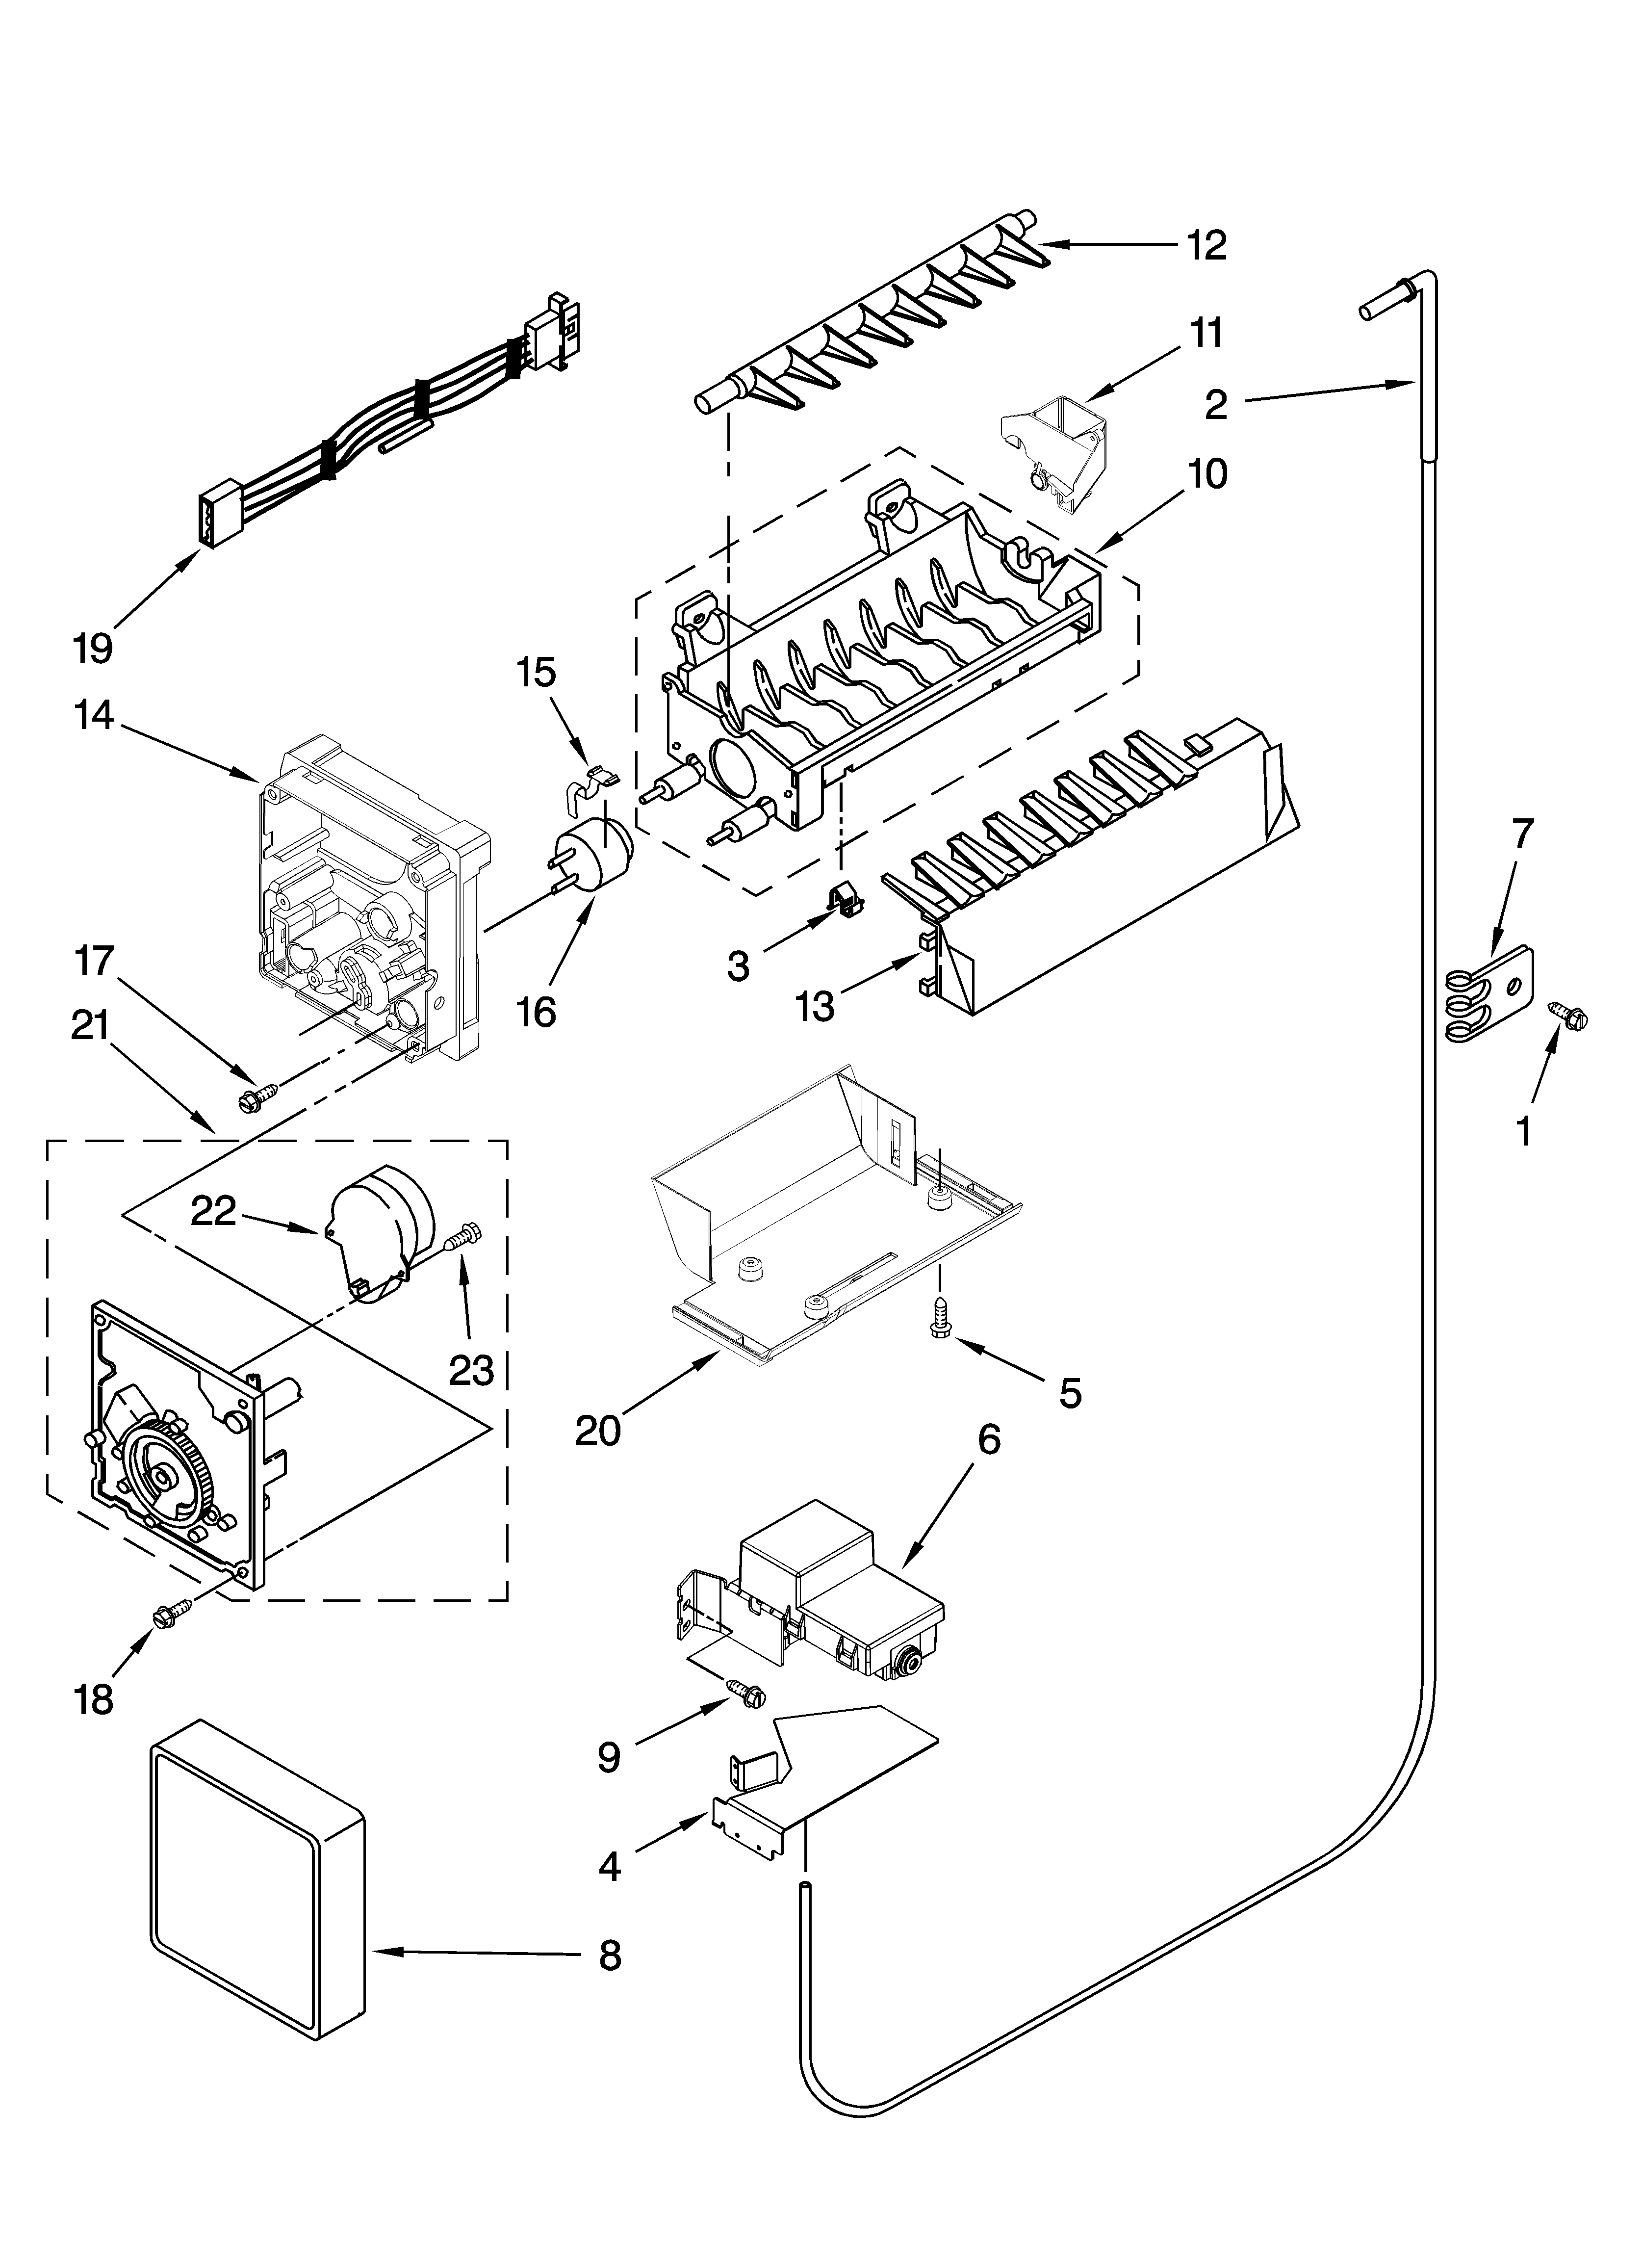 KitchenAid KSCS23FTWH02 icemaker parts, optional parts (not included) diagram